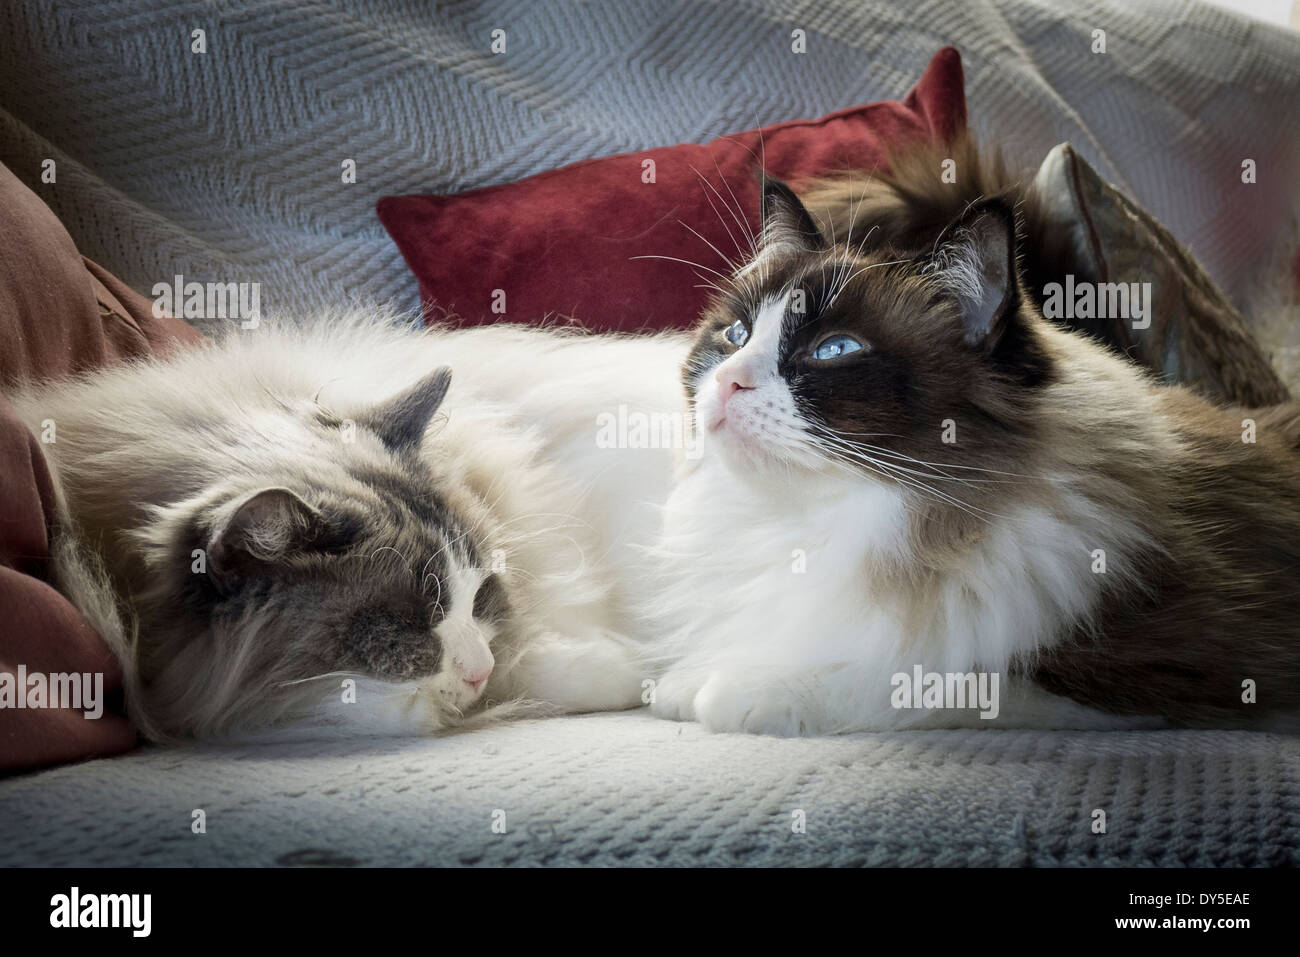 Two Ragdoll cats sharing a settee while living together indoors - Stock Image